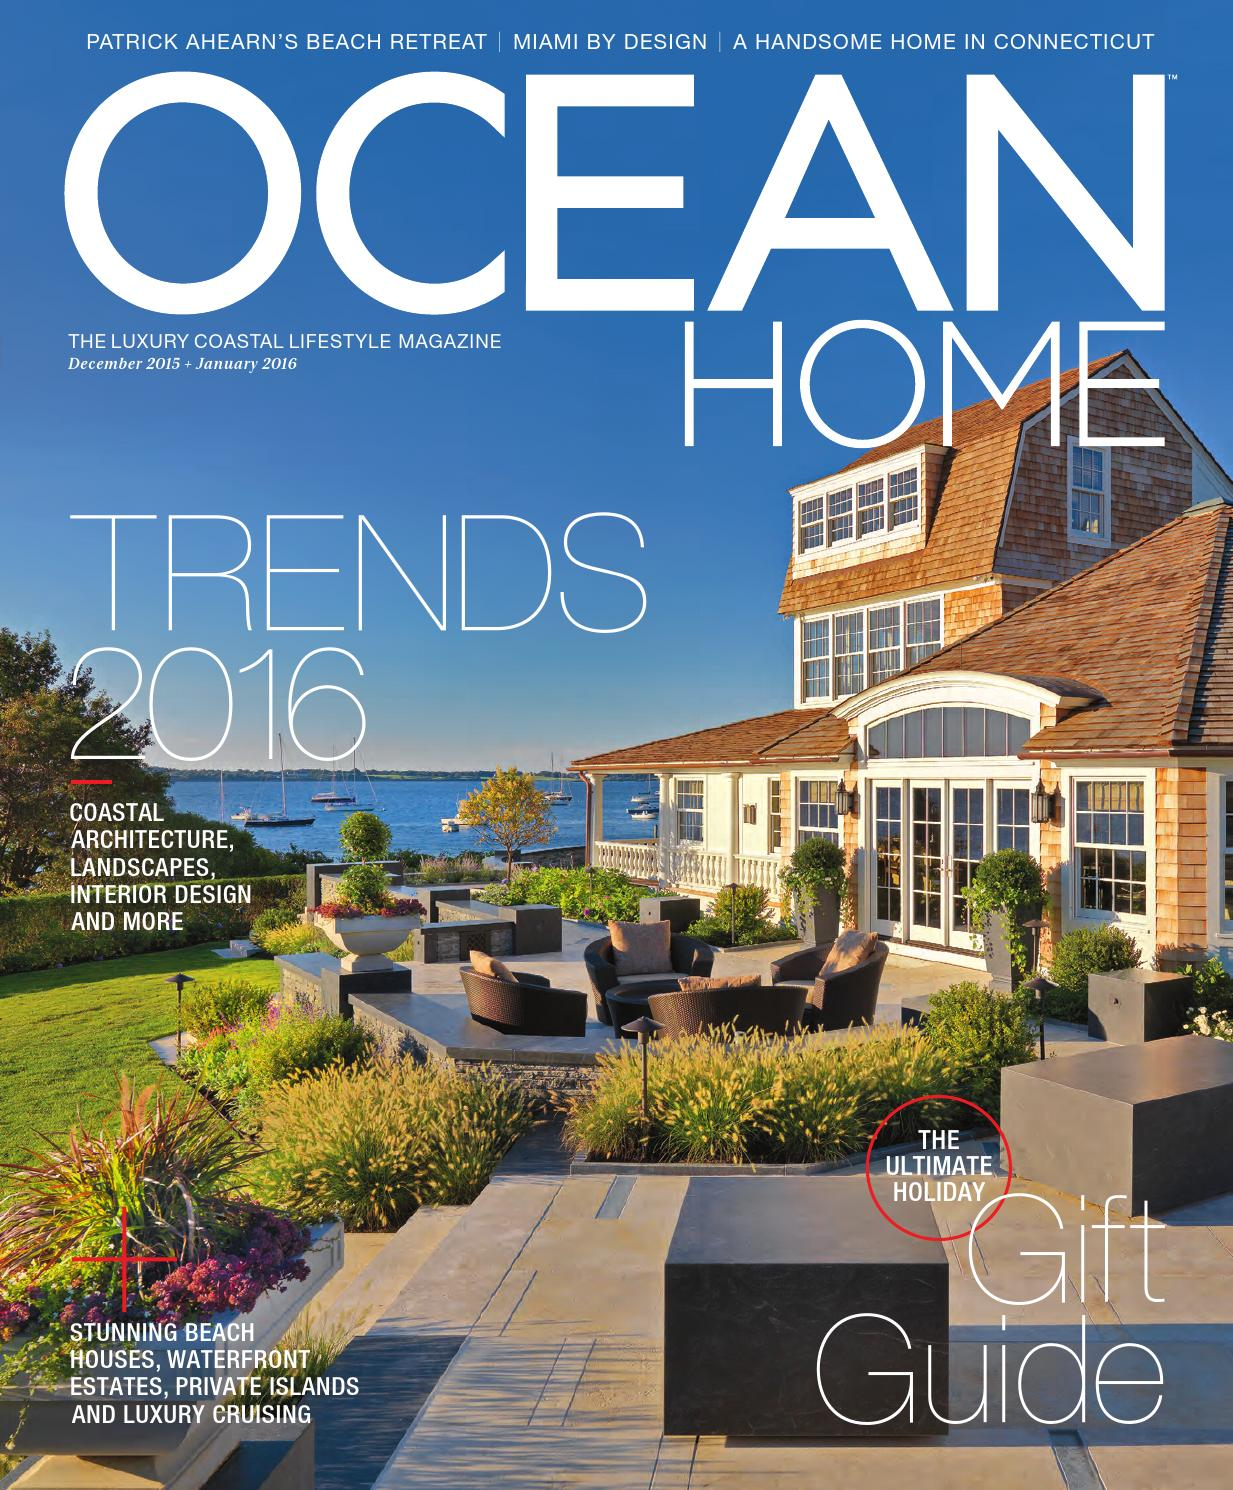 Ocean Home December 2015 January 2016 By Magazine